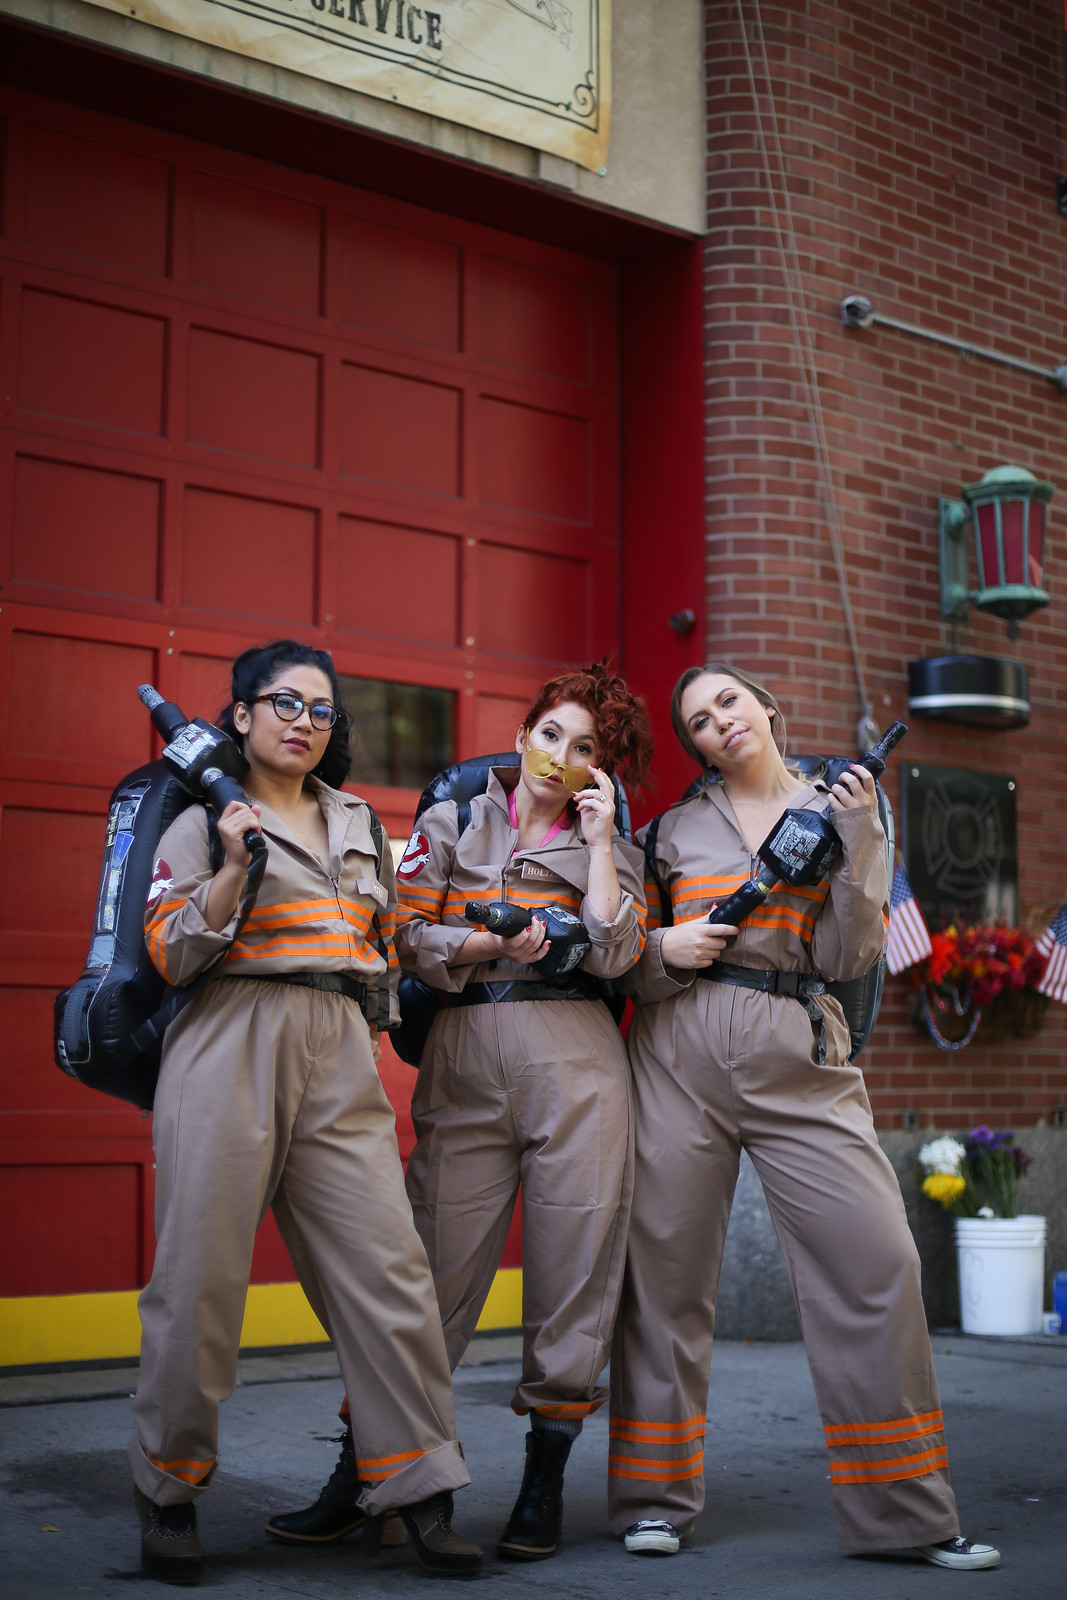 Ghostbusters Halloween Costume | Hilarious Group Halloween Costumes | Funny Halloween | East Halloween Costumes | The Best Last Minute Halloween Costumes